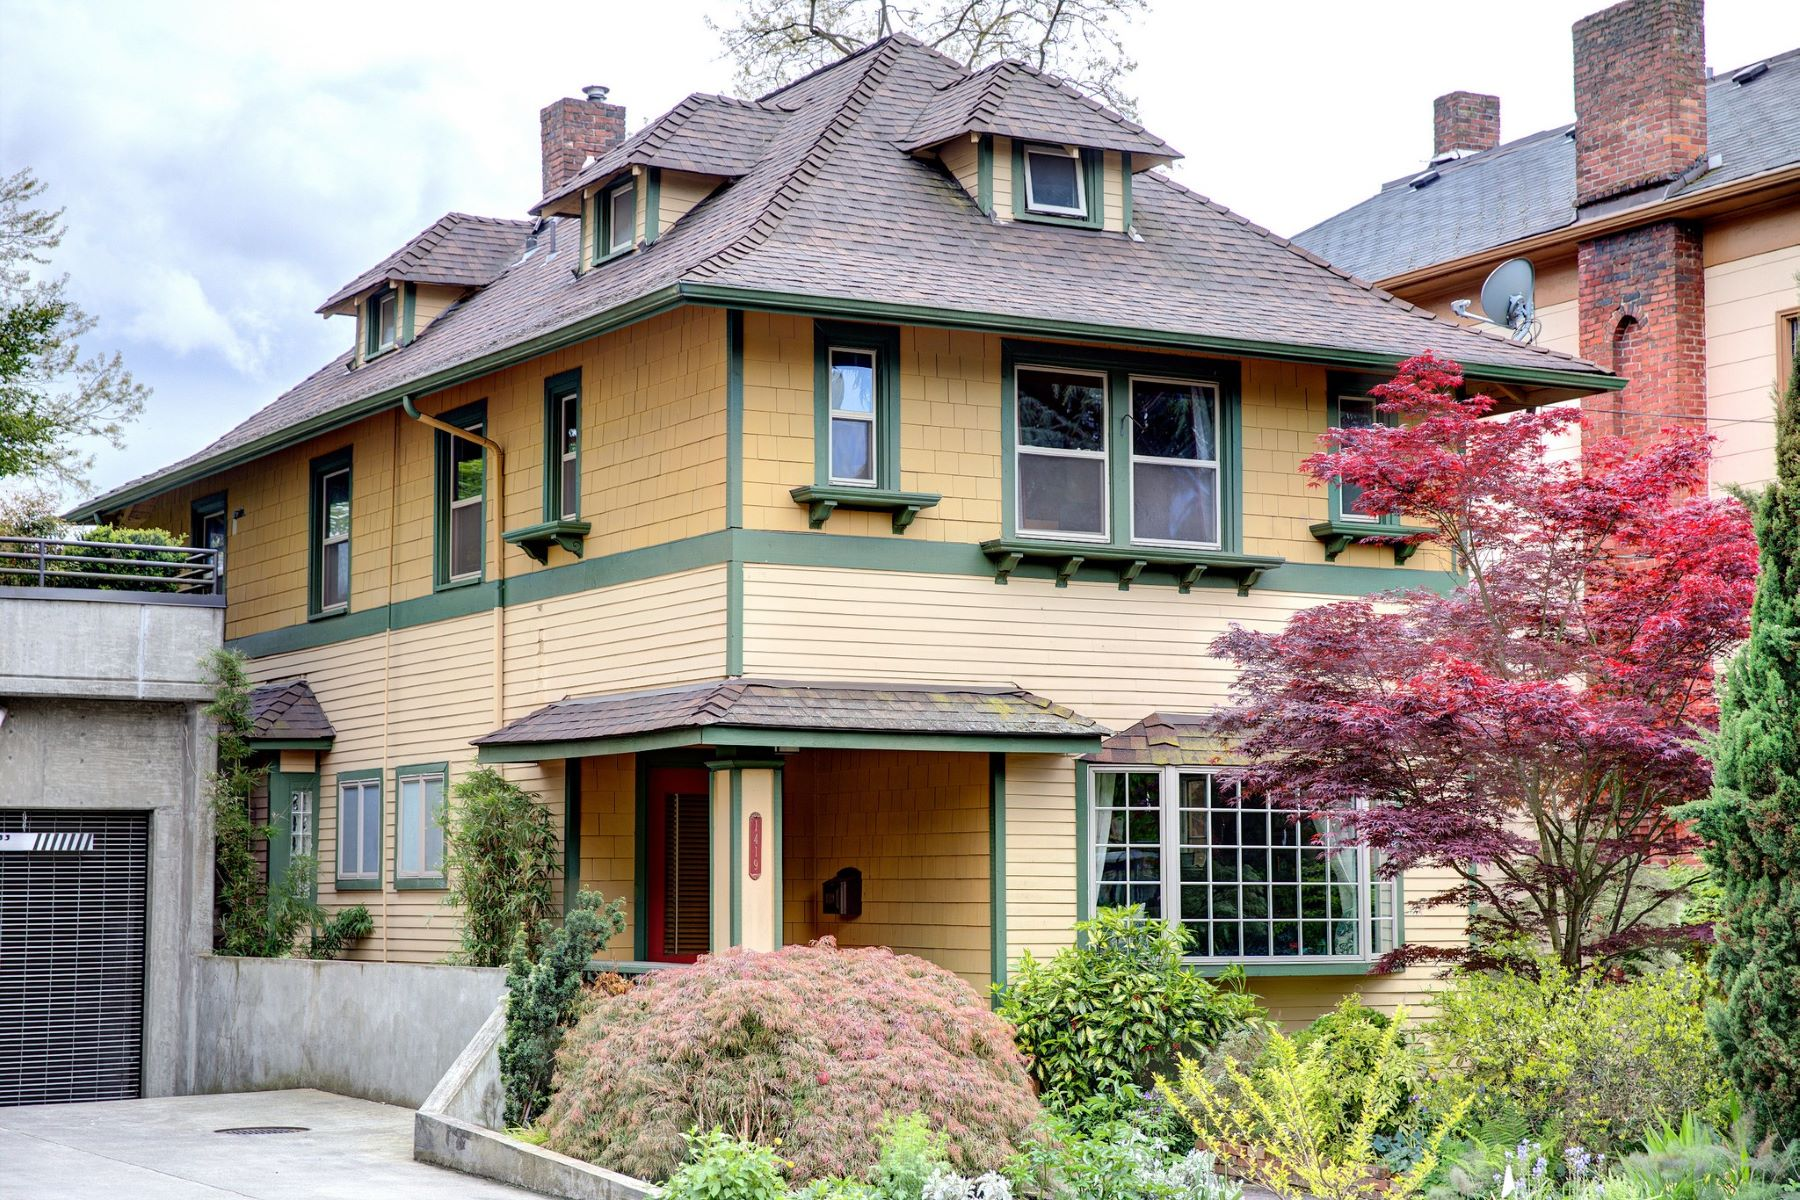 Duplex for Sale at Capitol Hill Duplex, Endless Options 1419 E John Street Seattle, Washington 98112 United States